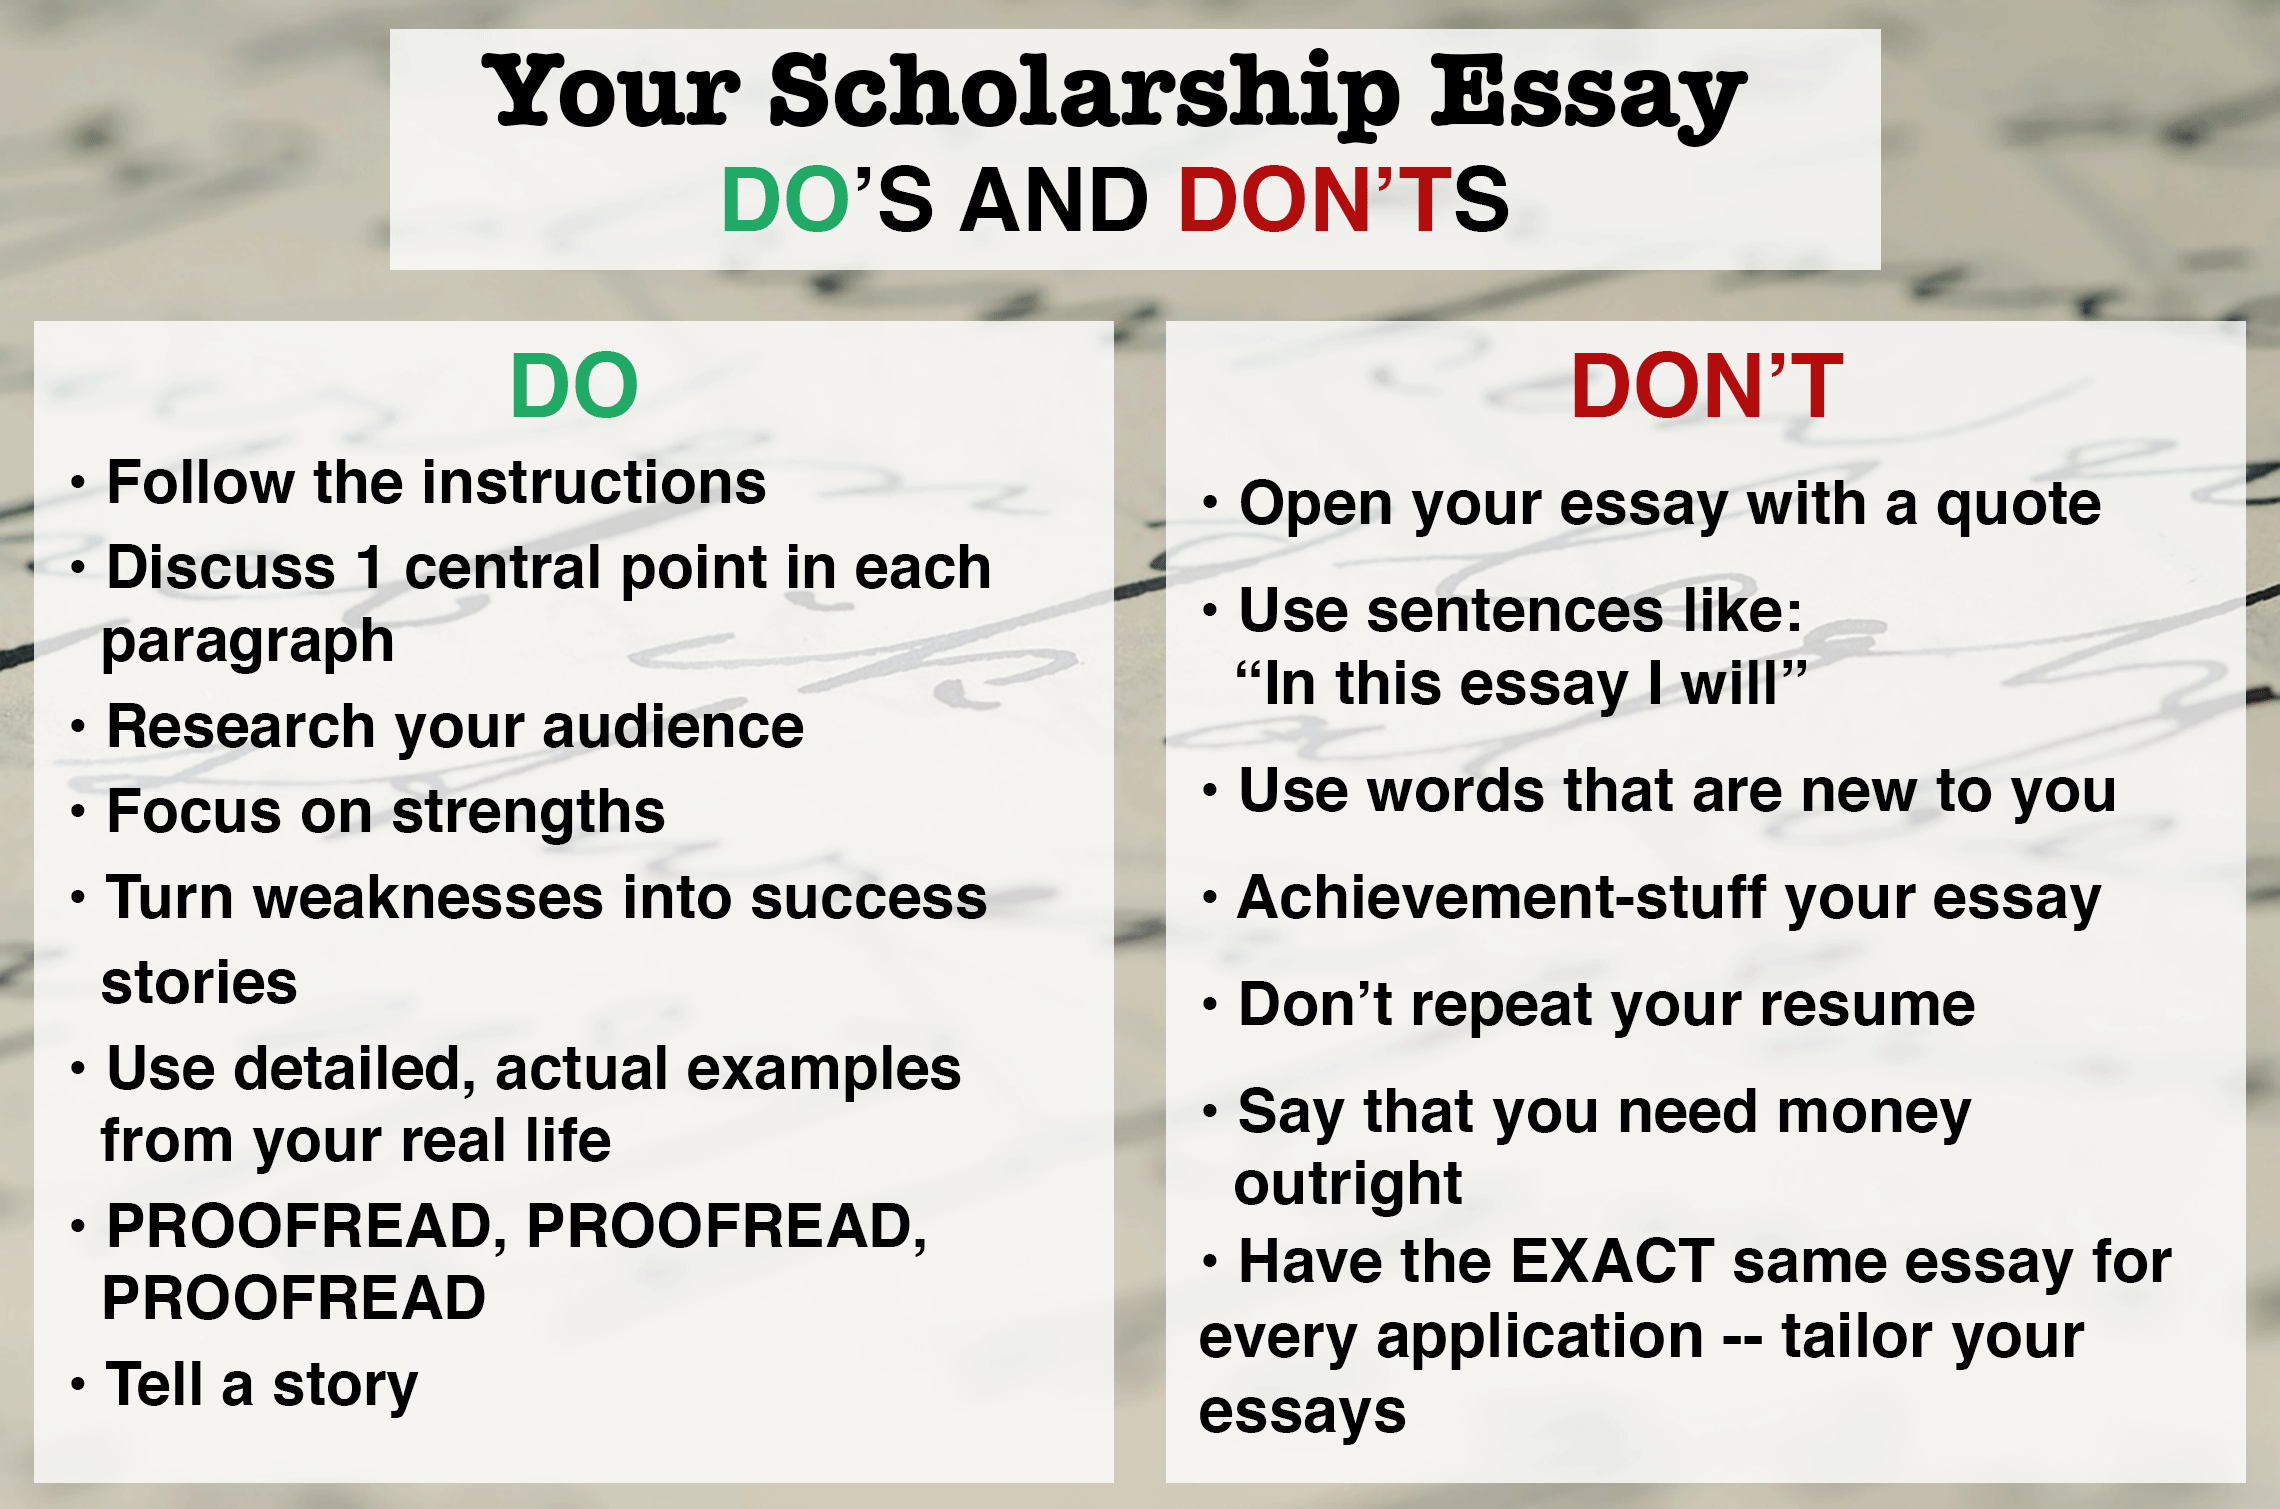 10 Tips for Writing Effective Scholarship Essays